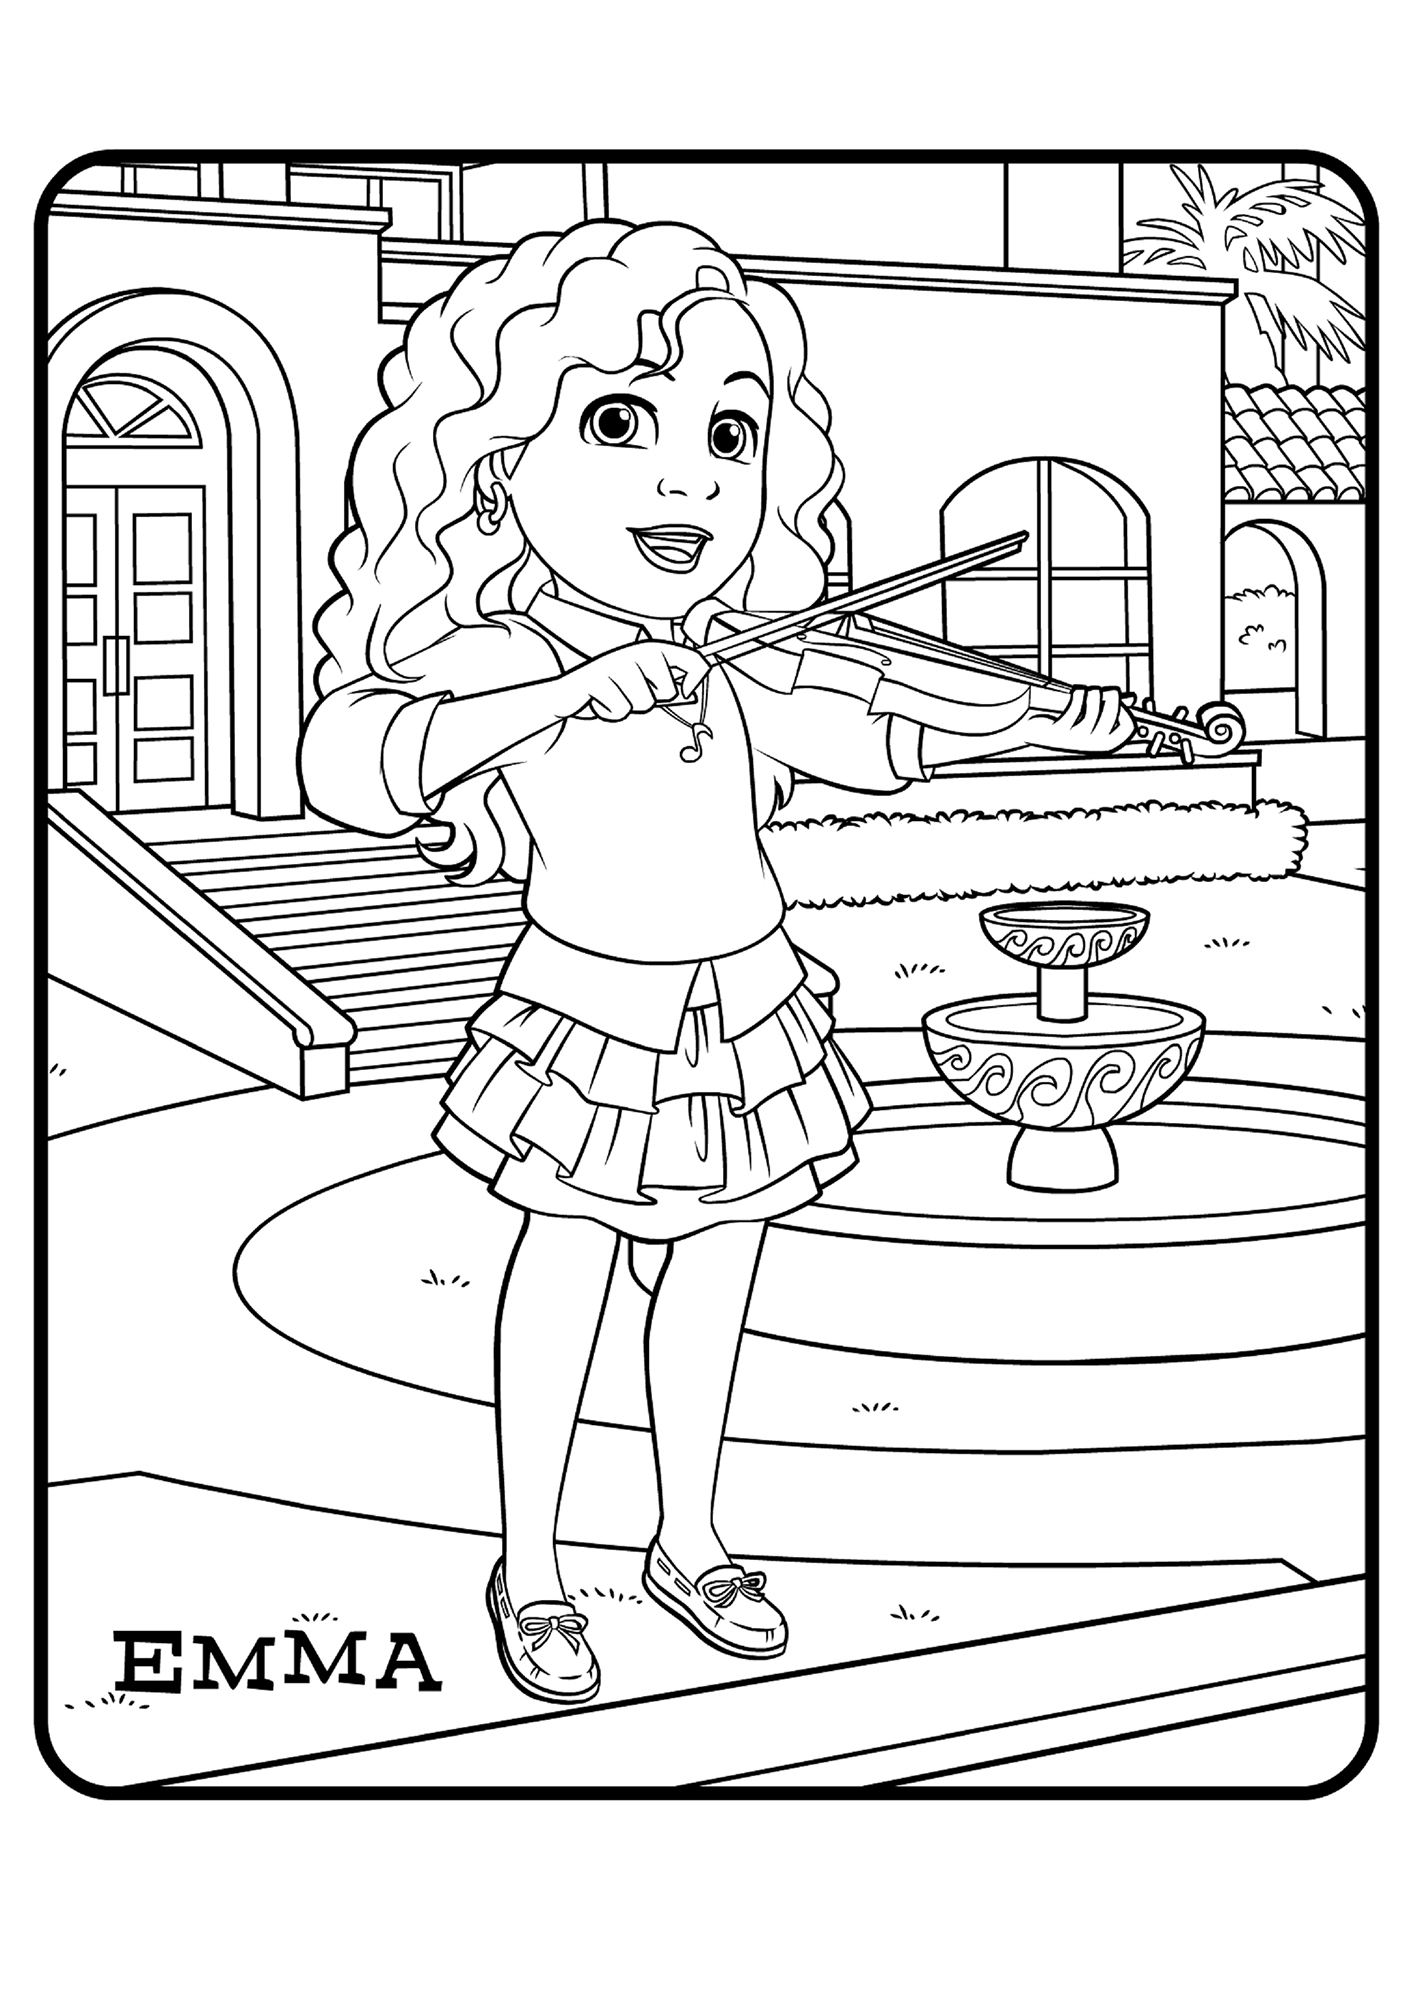 Emma In Bubble Letters Coloring Pages Of Names Sketch